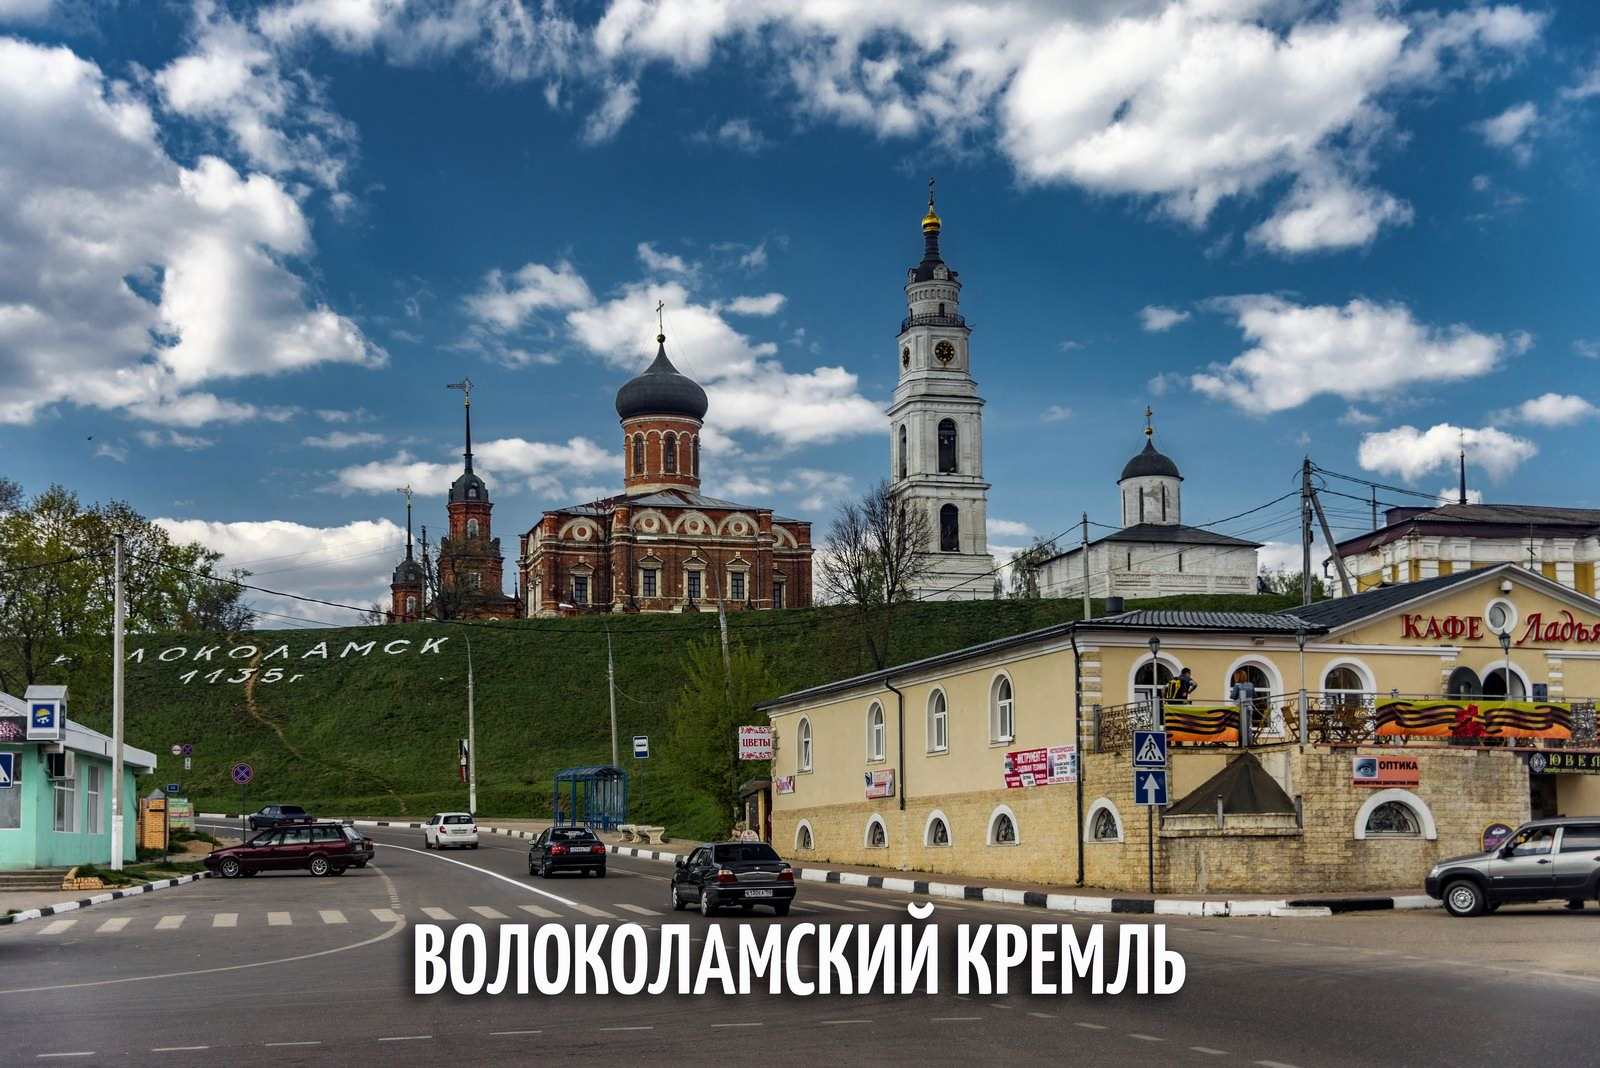 The Moscow Kremlin architectural ensemble: description, history and interesting facts 22